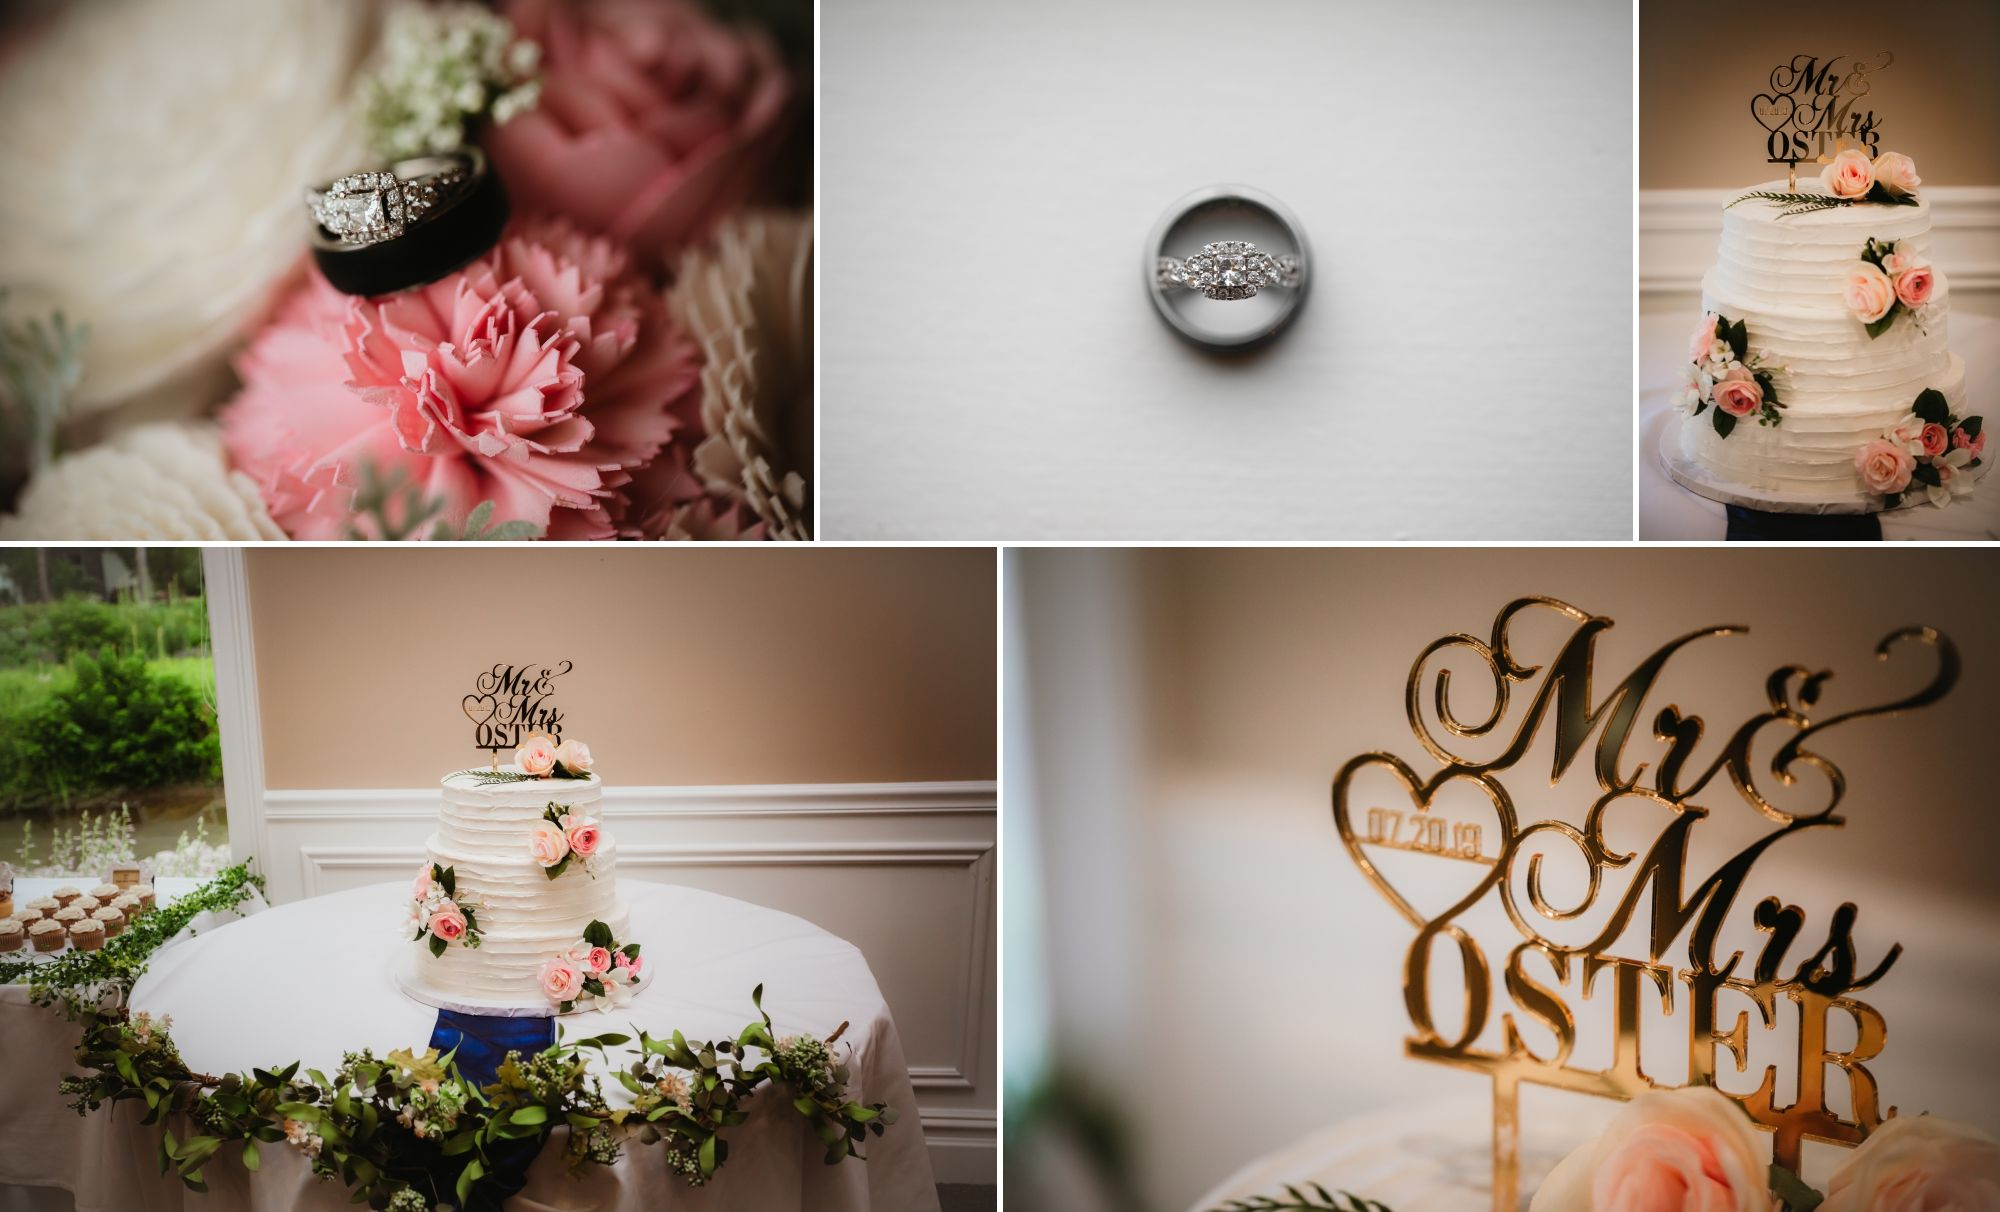 Photos of the wedding rings, pink flowers, wedding cake, and gold cake topper.